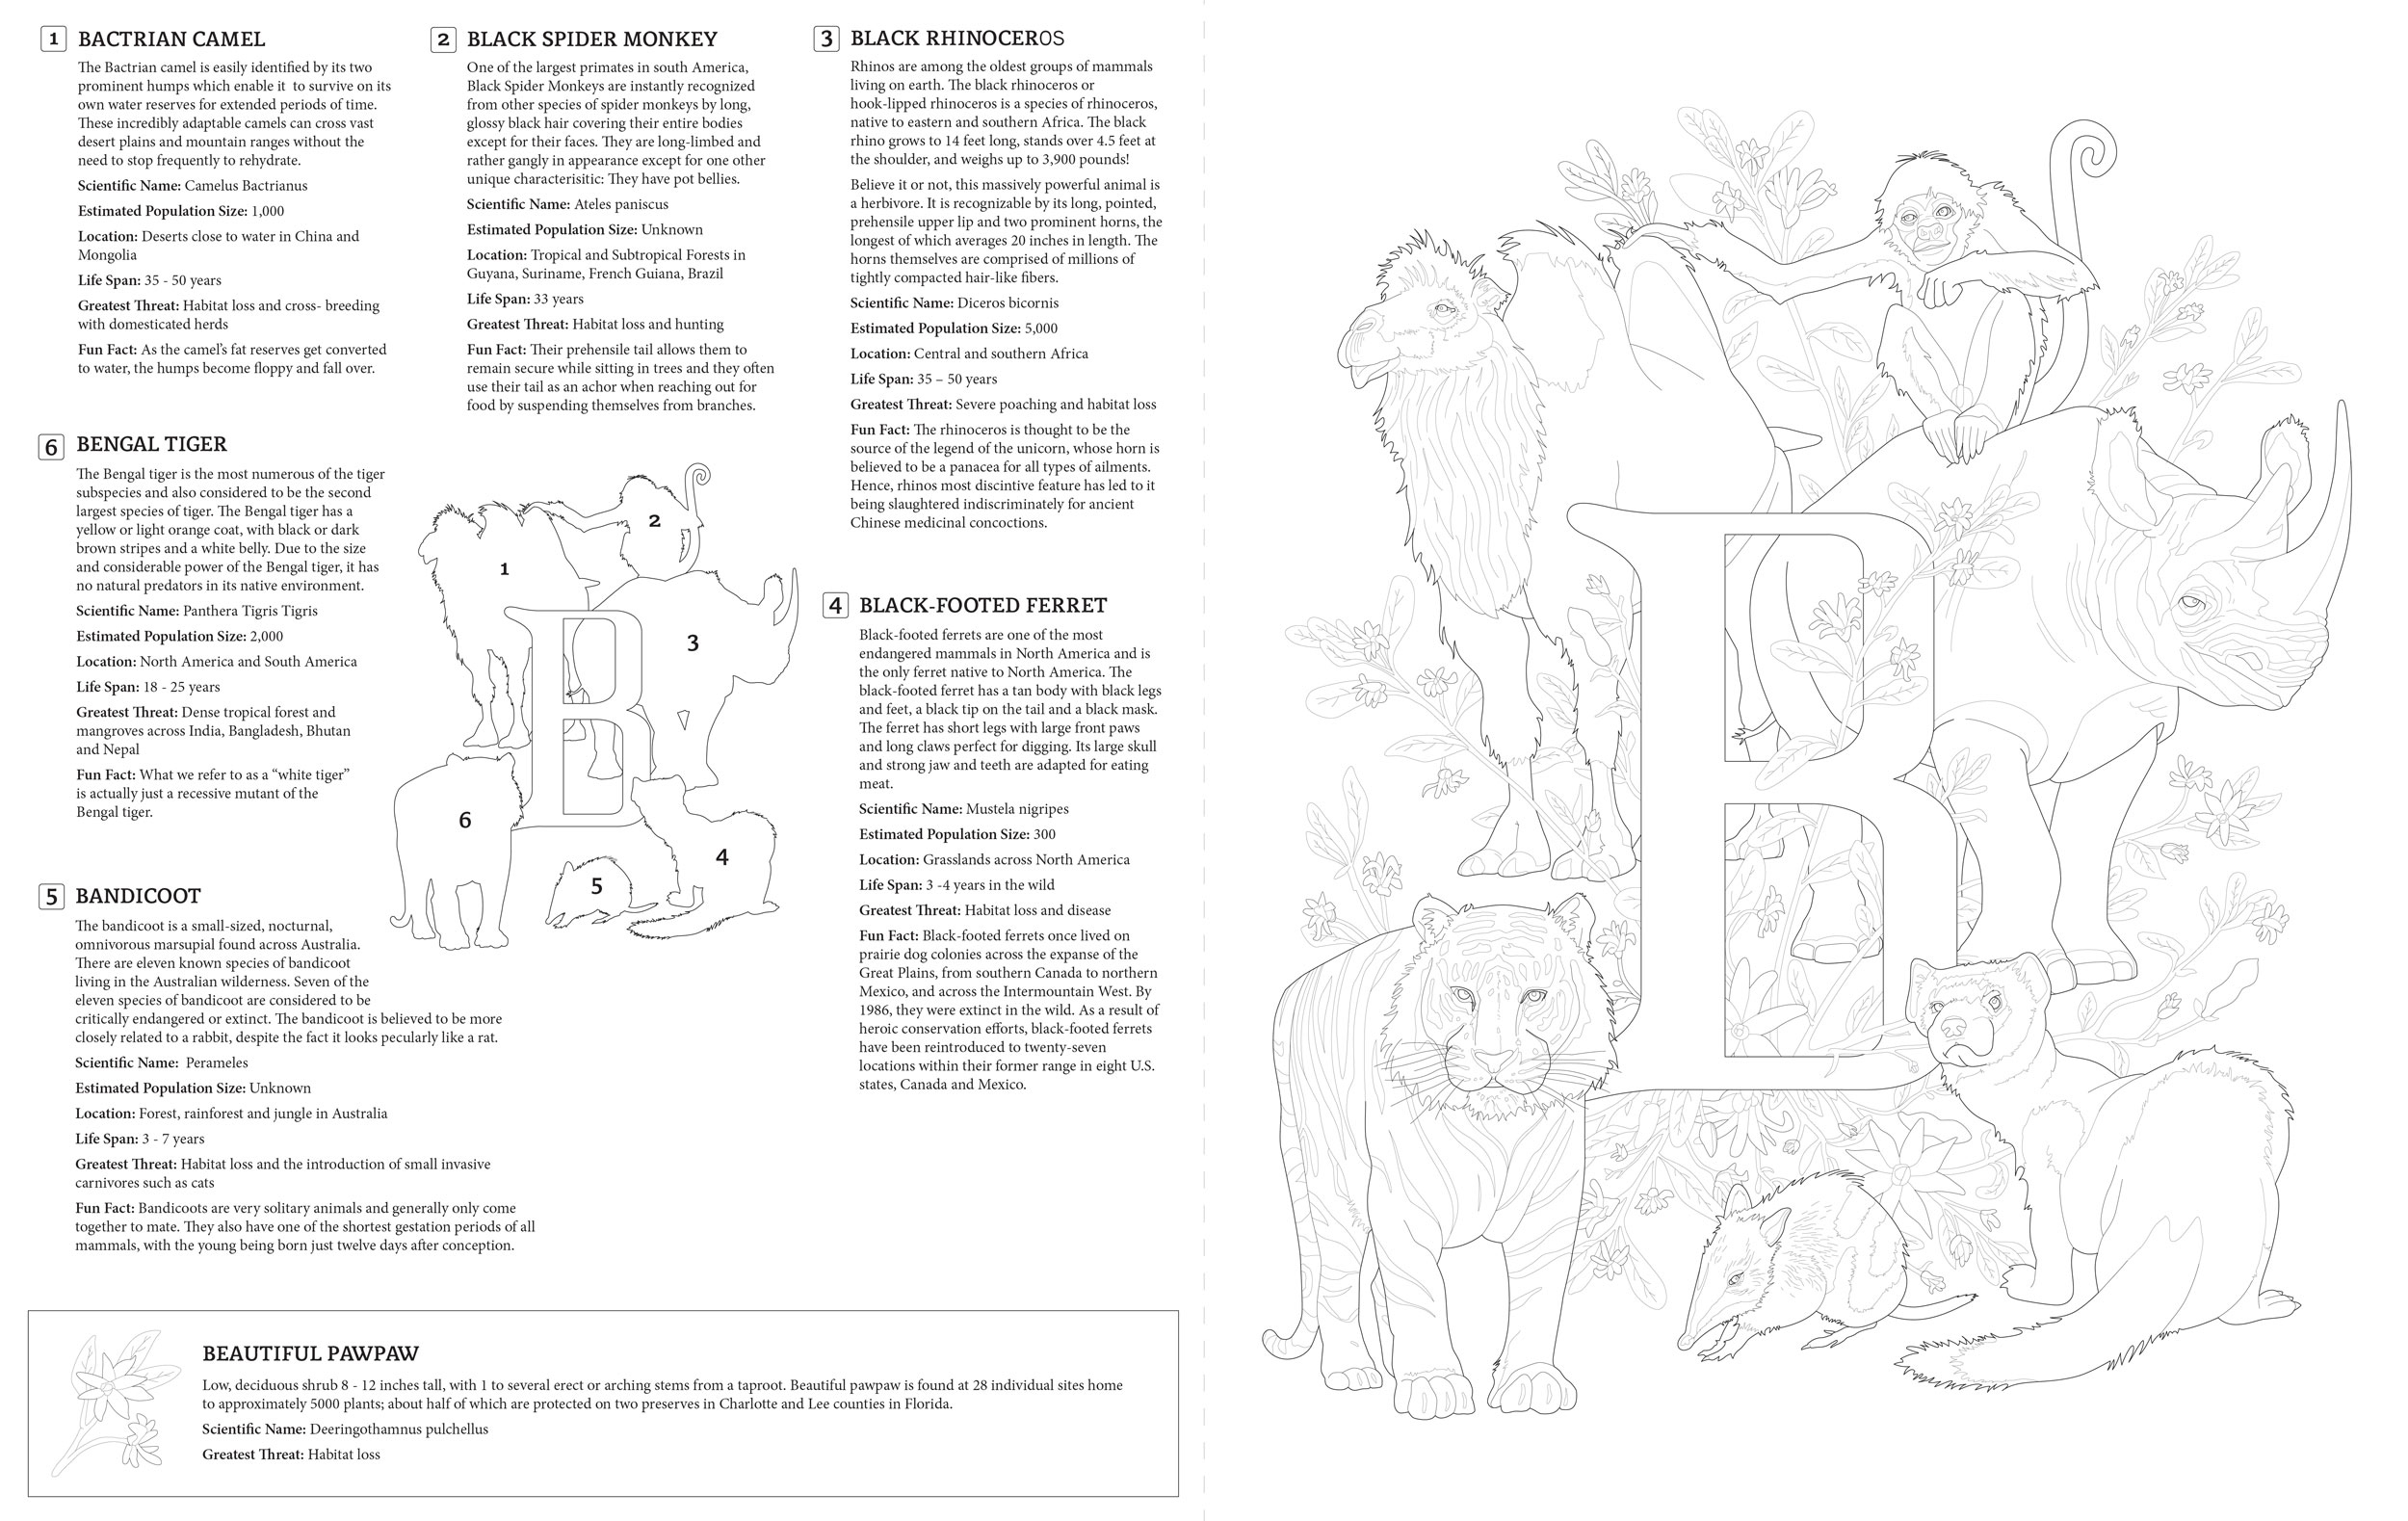 E is for Endangered, Letter B with info